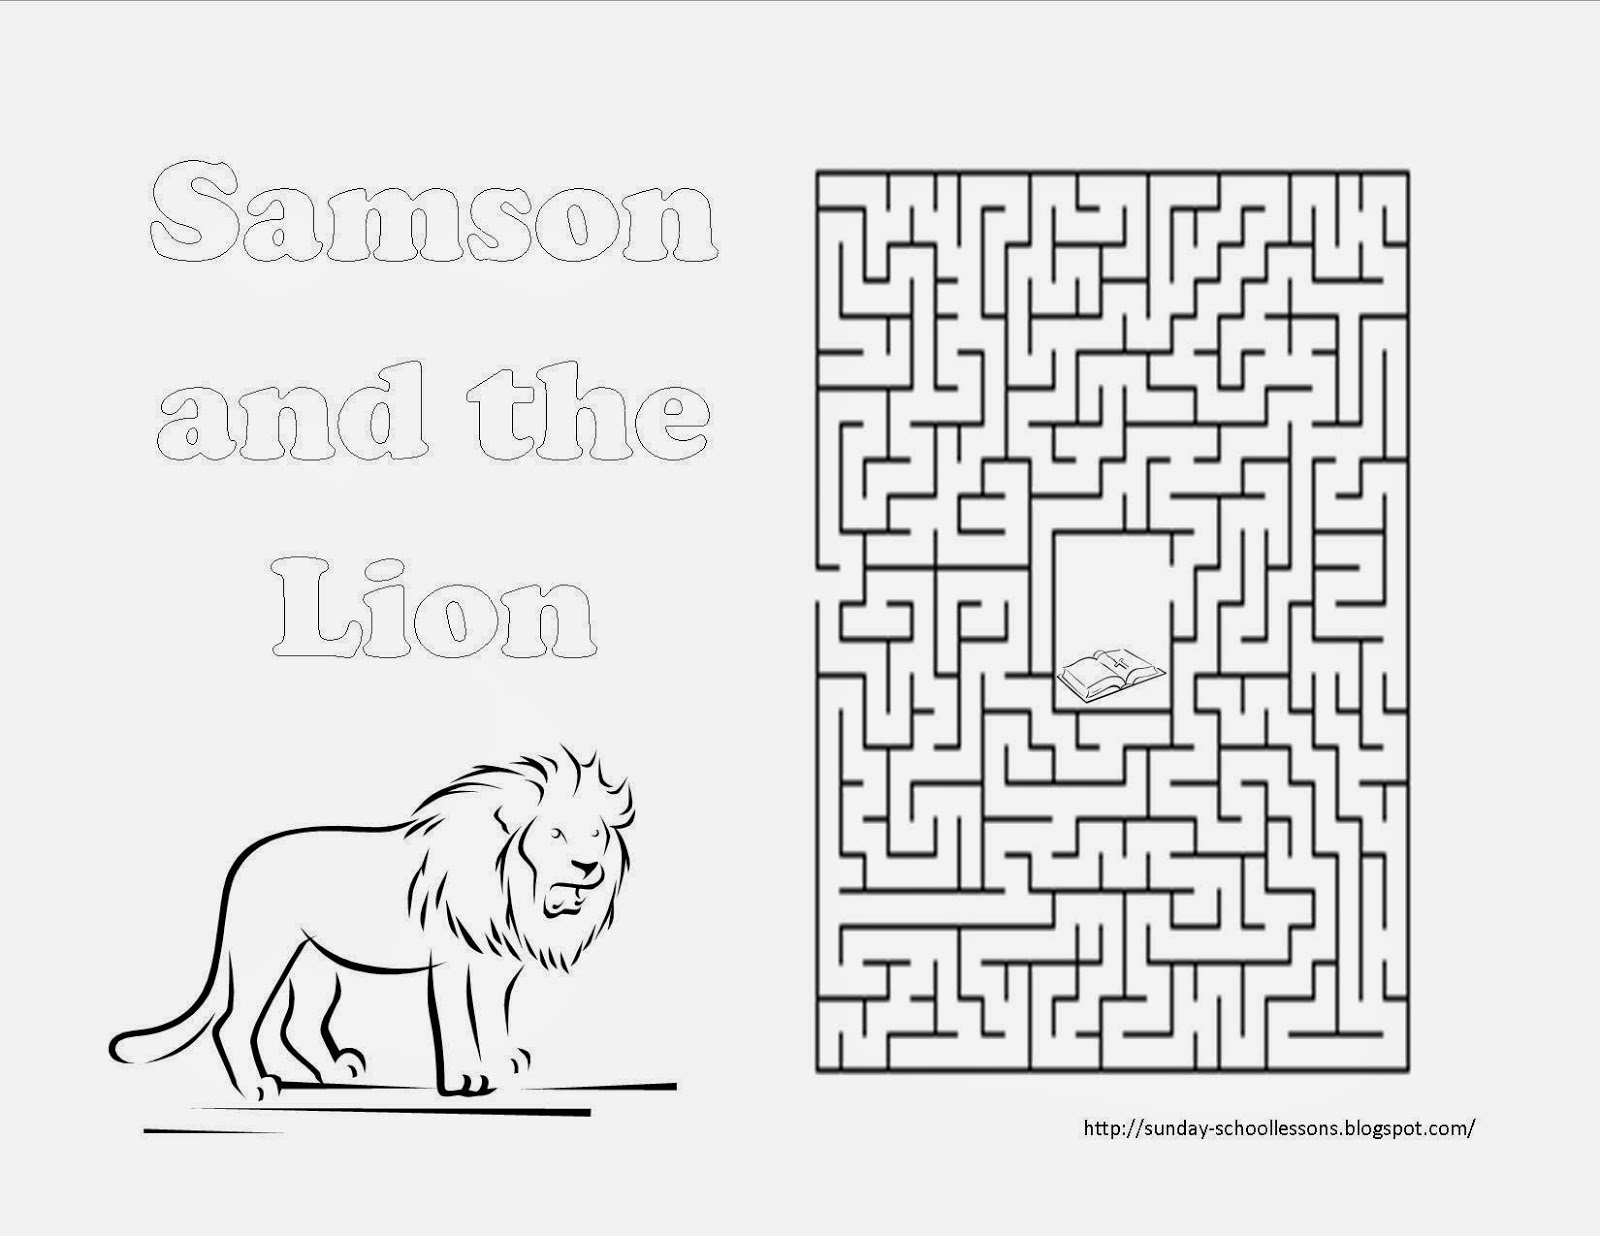 samson and the lion maze sunday school activity sunday school lessons of plenty. Black Bedroom Furniture Sets. Home Design Ideas